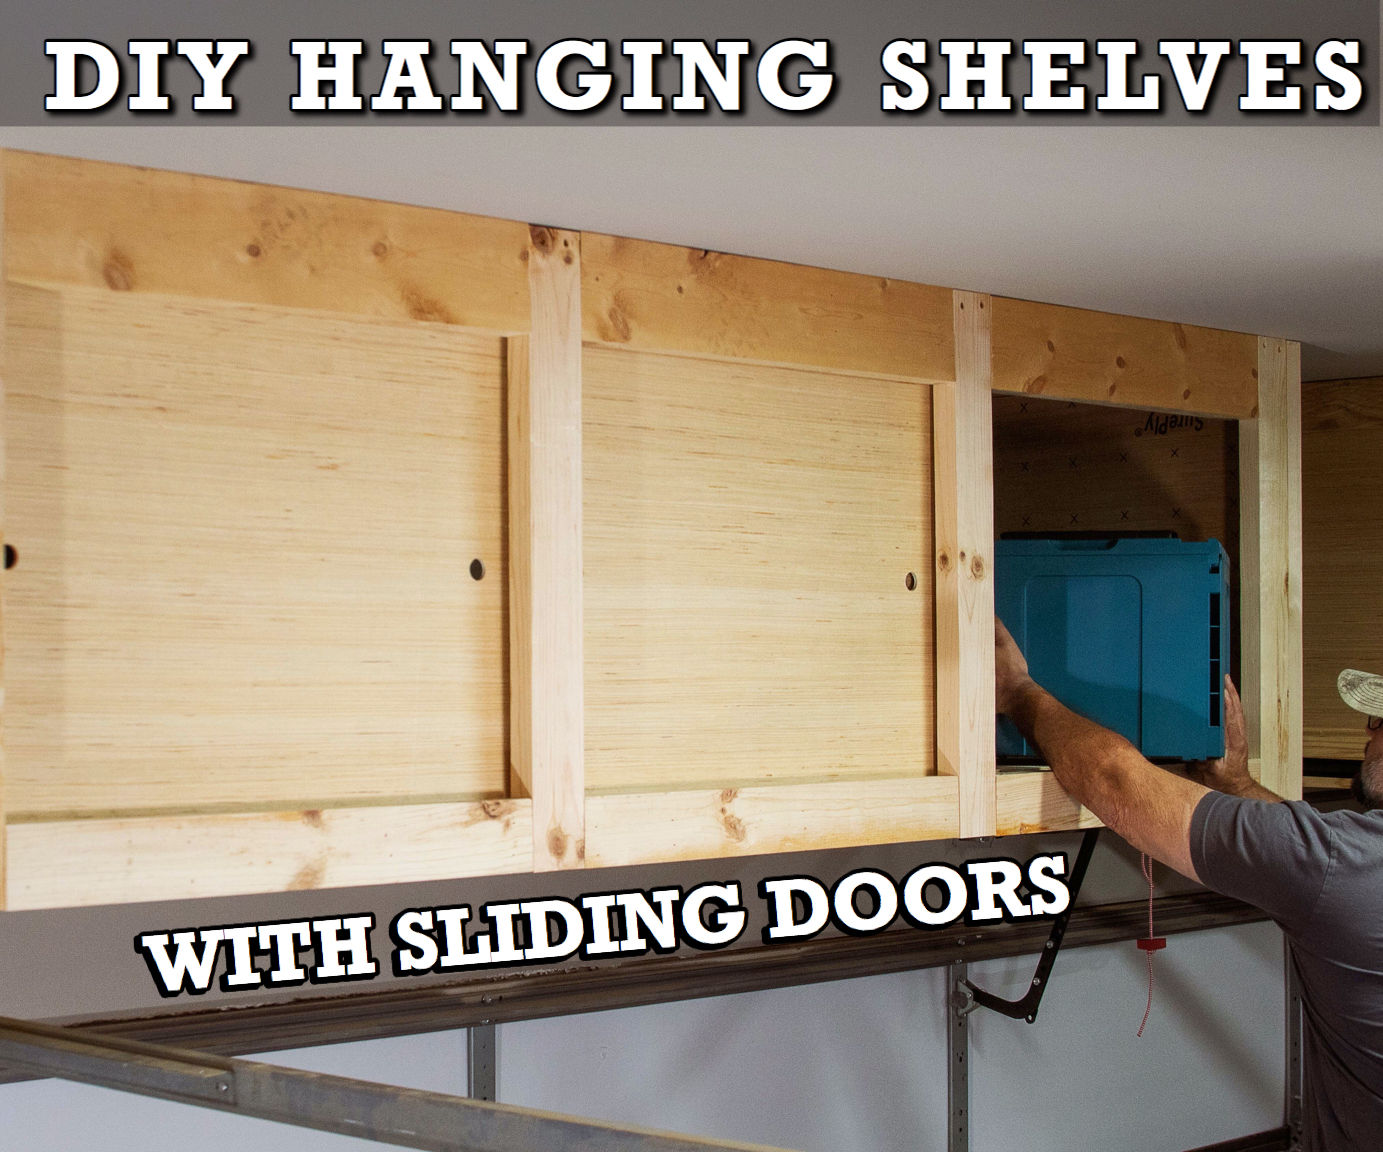 Diy Hanging Storage Shelves With Sliding Doors Overhead Garage Storage 13 Steps With Pictures Instructables